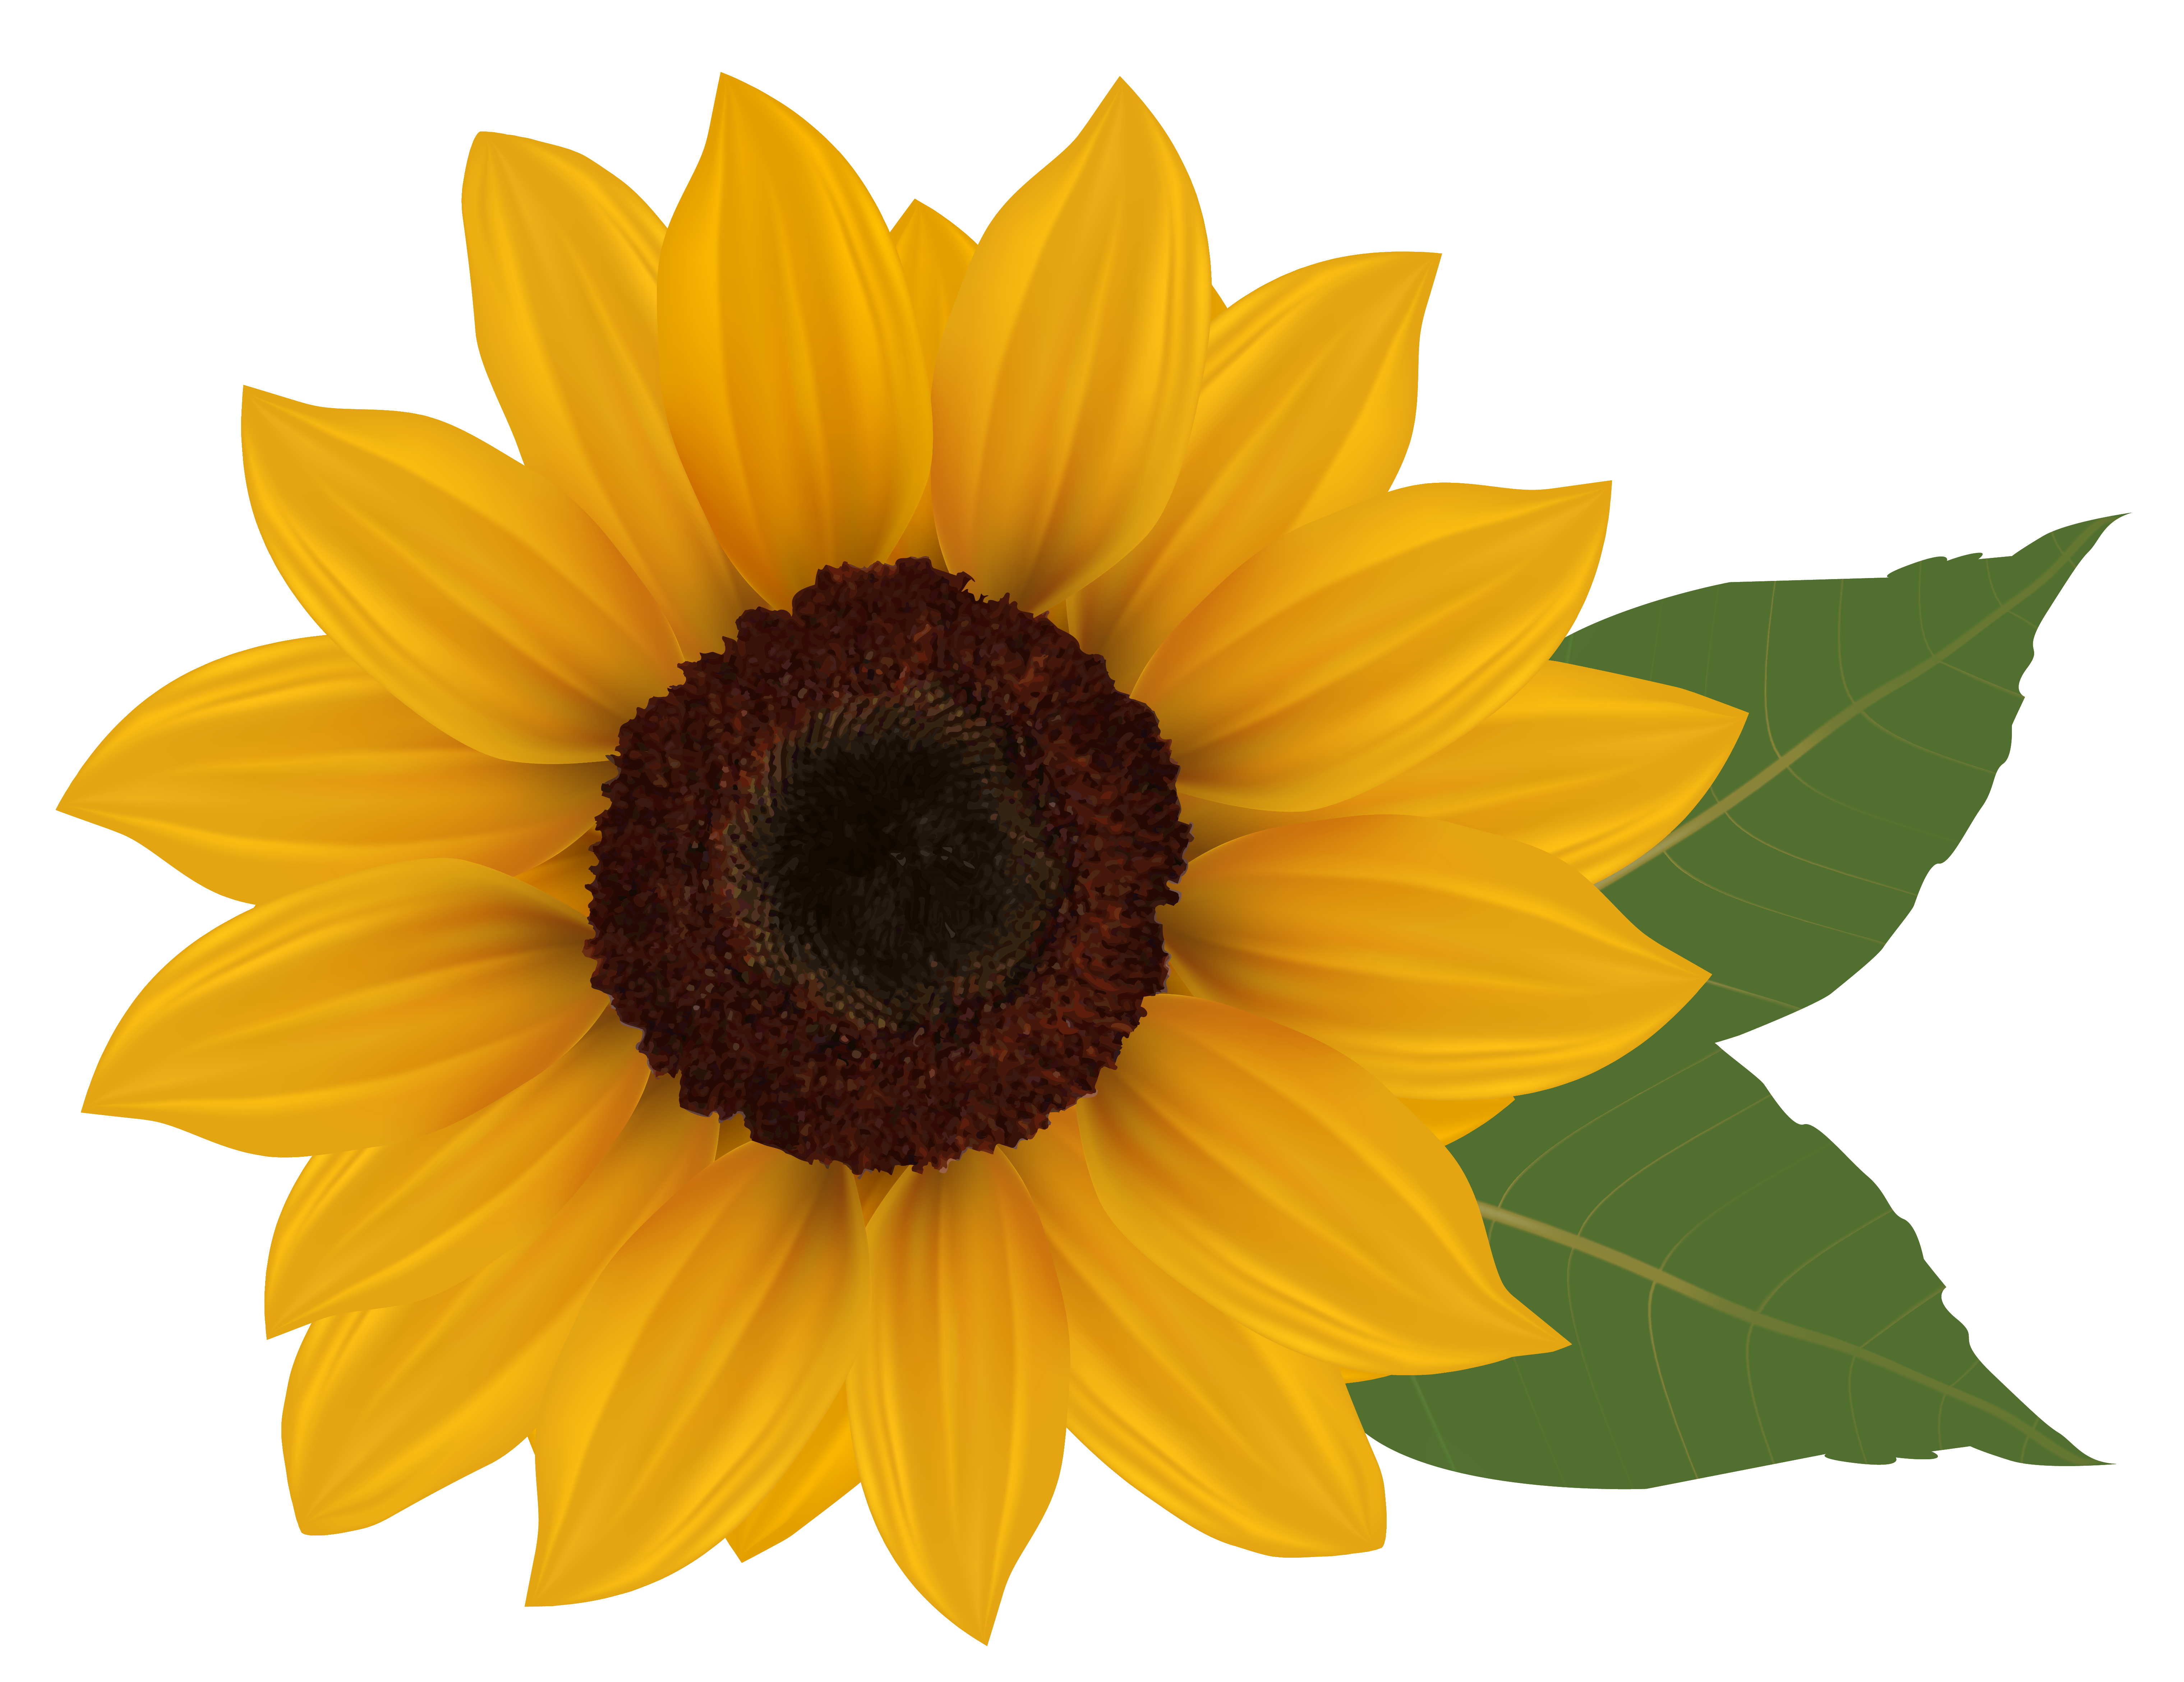 Sunflowers png clipart. Sunflower images free download